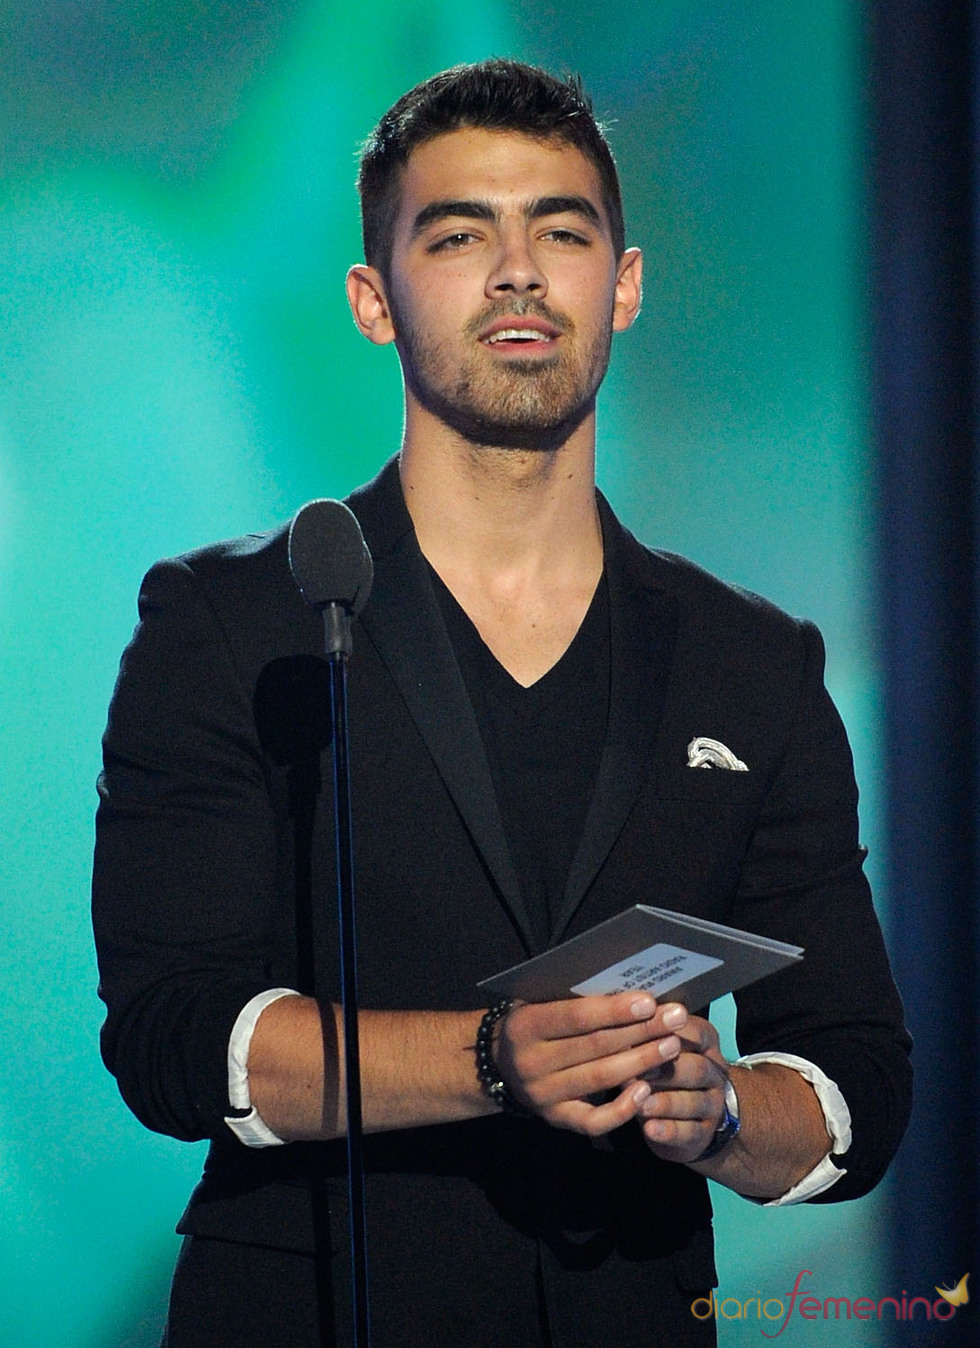 Joe Jonas presenta un premio en los Billboard Music Awards 2011